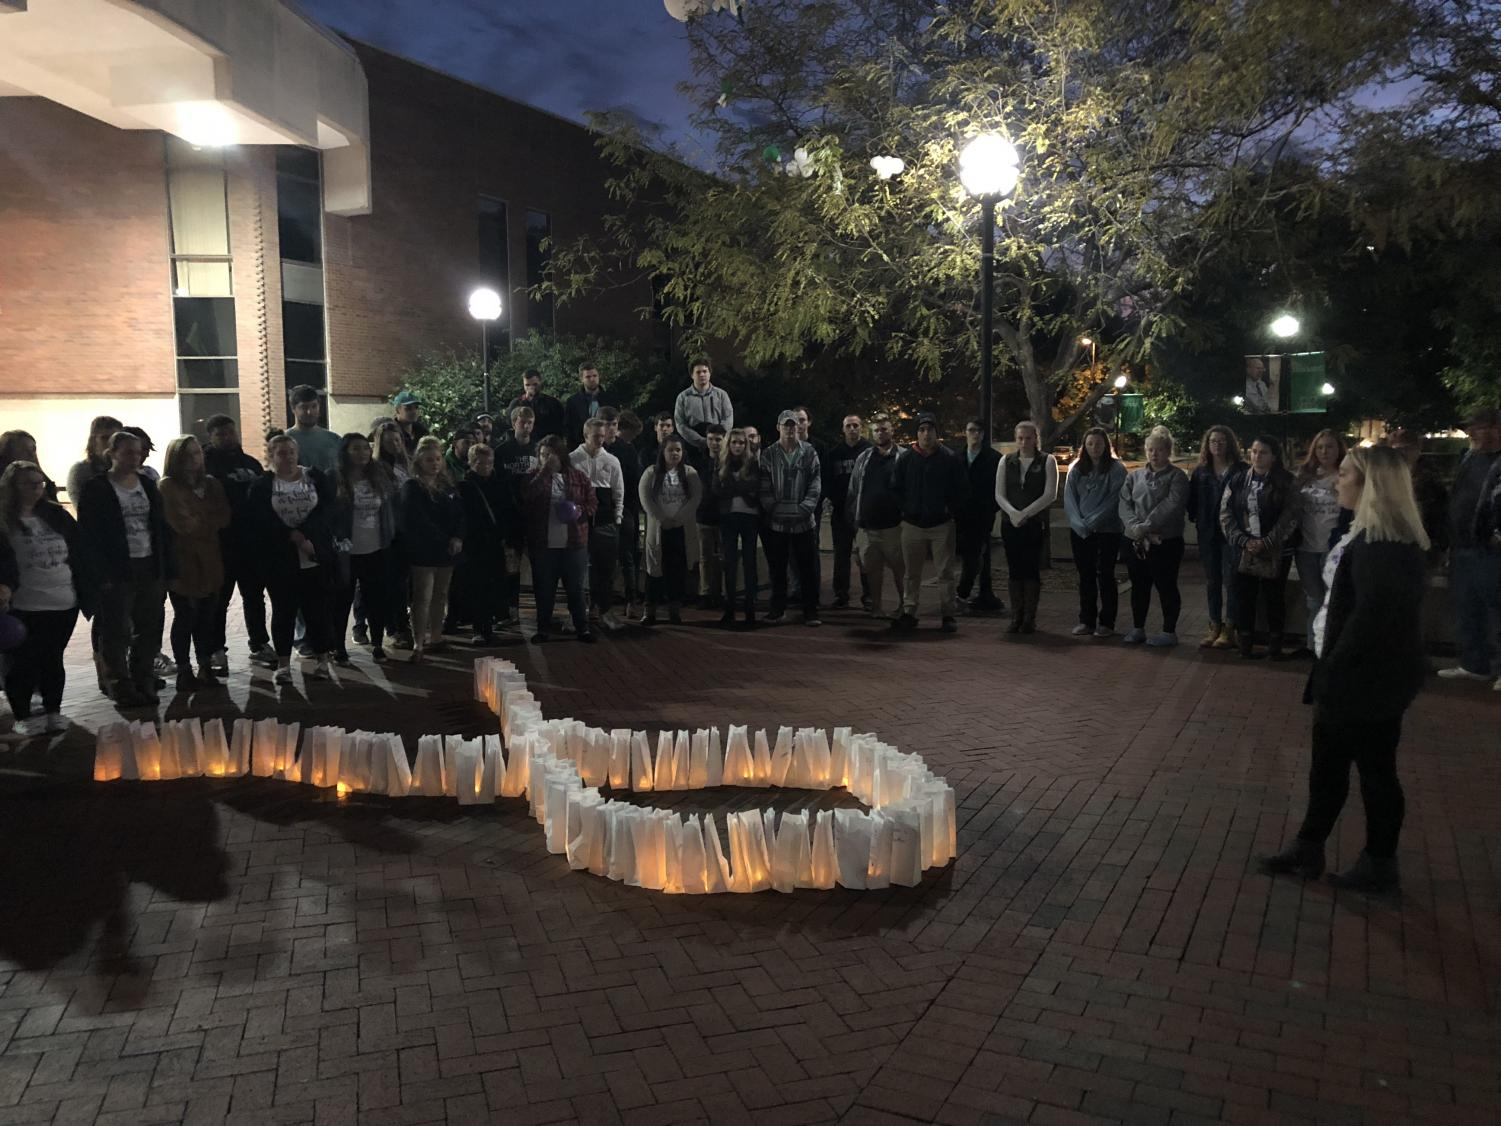 During the event on Thursday, Oct. 25, participants walked in silence around the Memorial Student Center plaza with candlelit bags just before placing them in the form of a ribbon to signify domestic violence awareness.